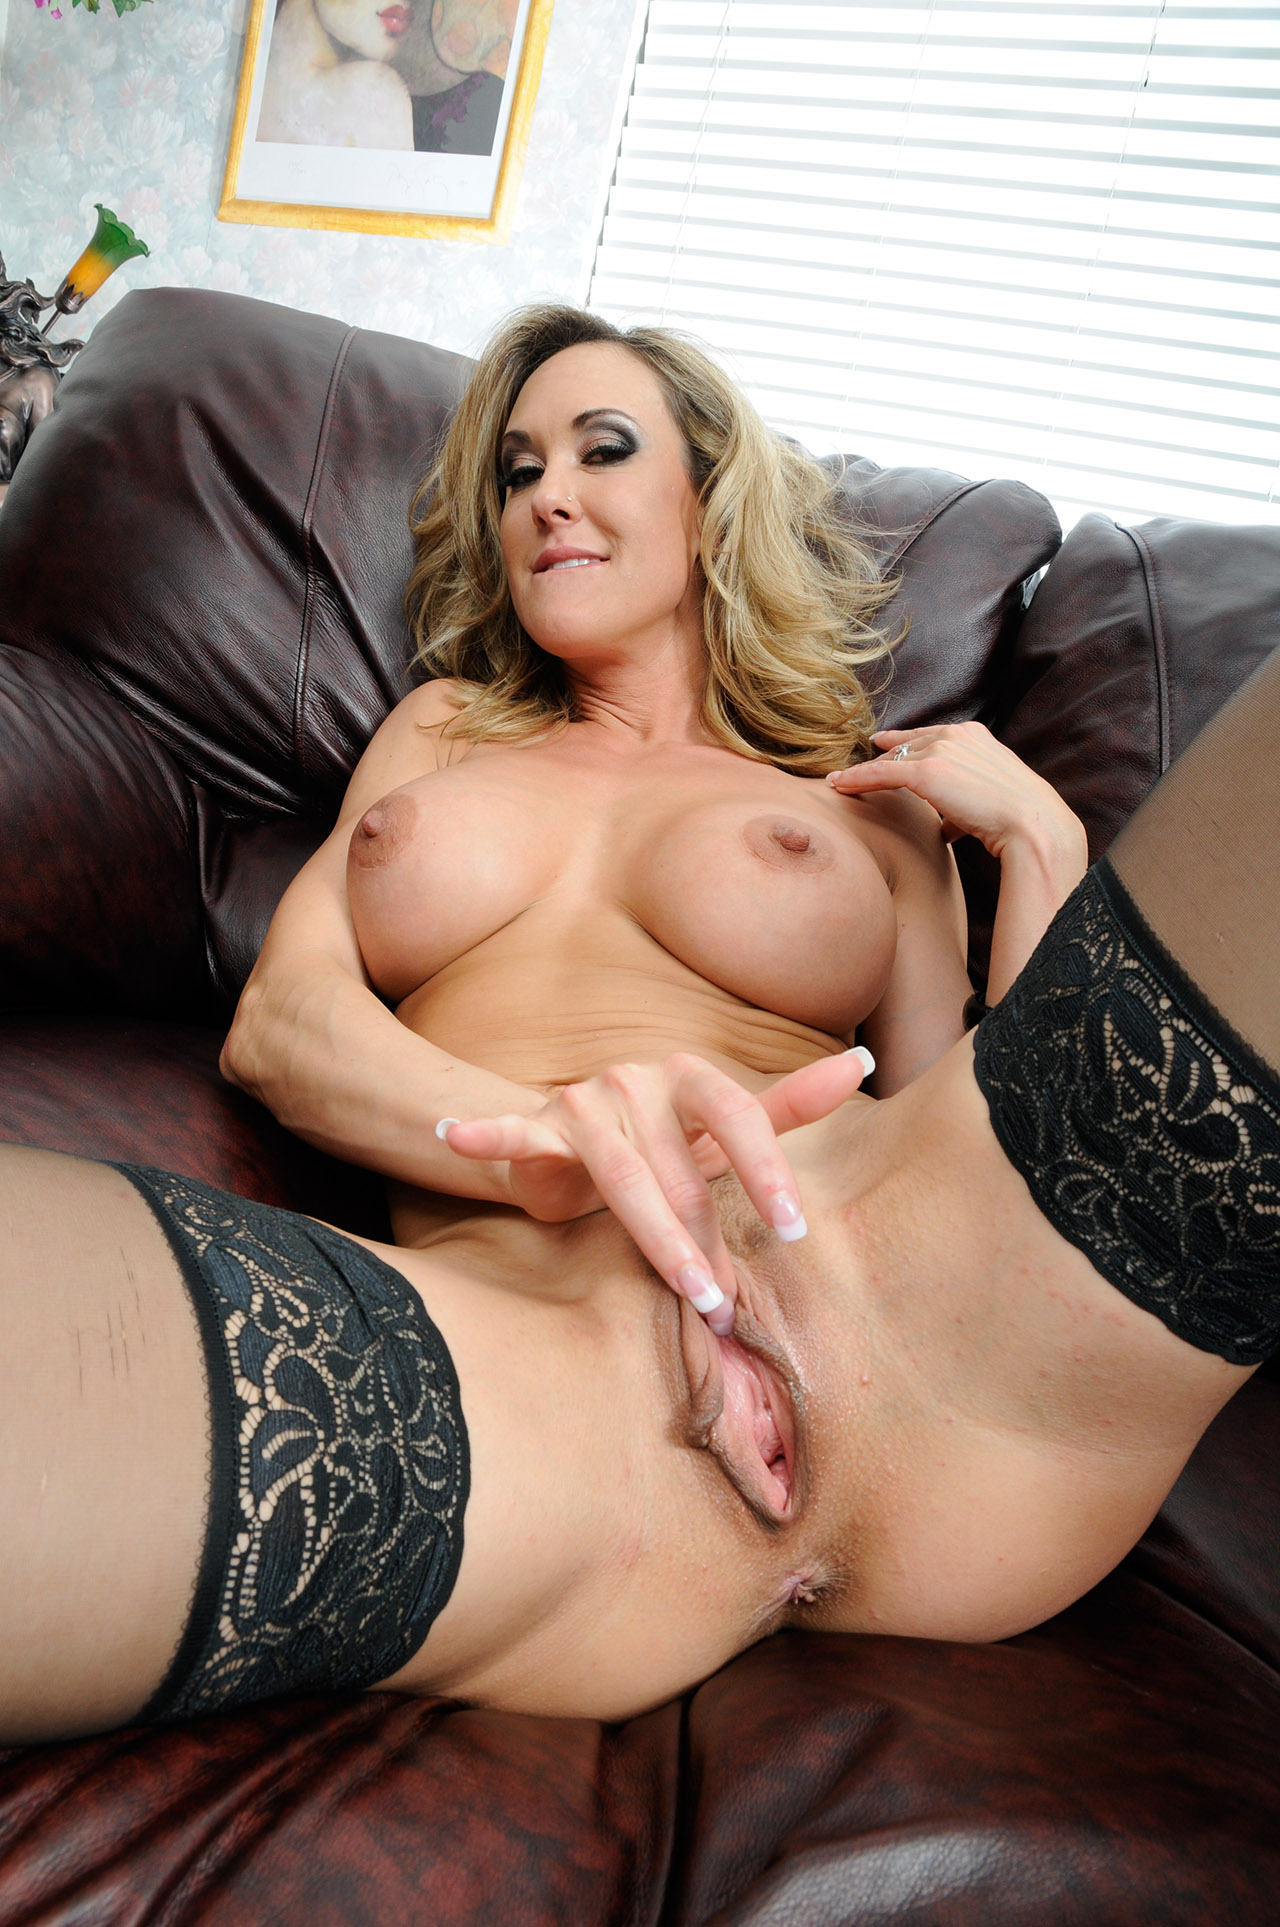 image Busty brandy aniston is eaten out passionately by her man